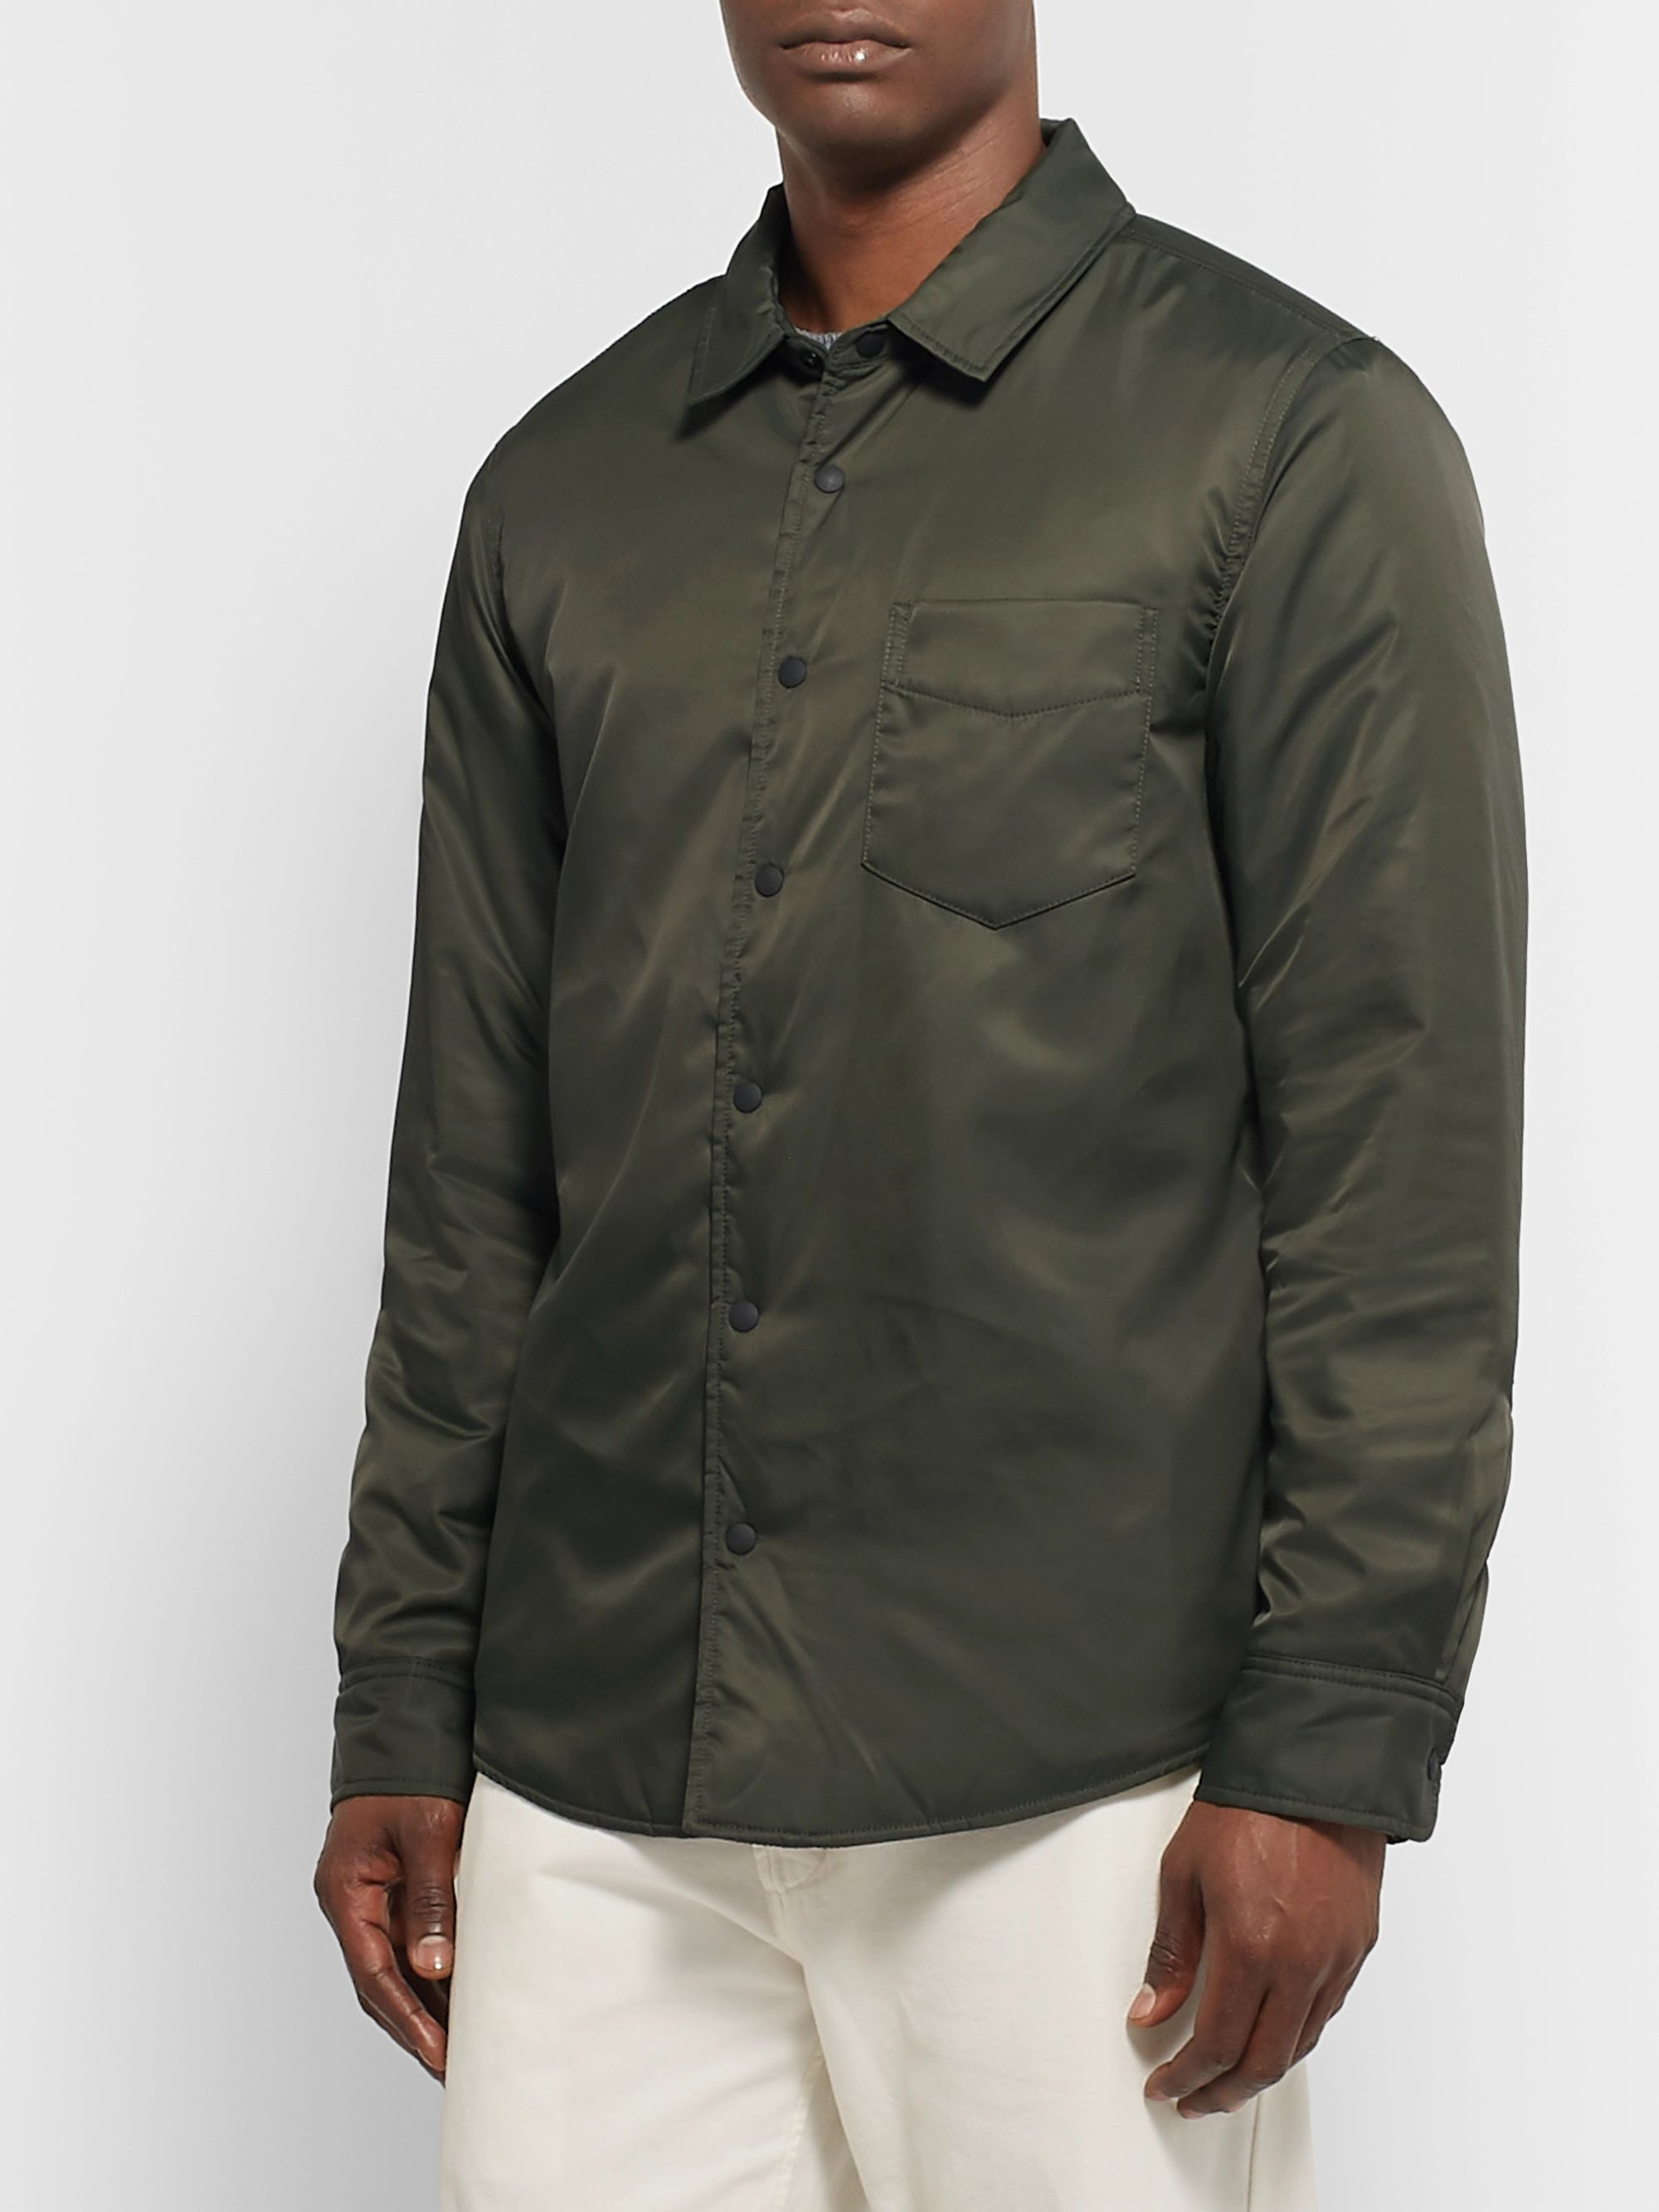 Outerknown Evolution ECONYL Nylon Shirt Jacket